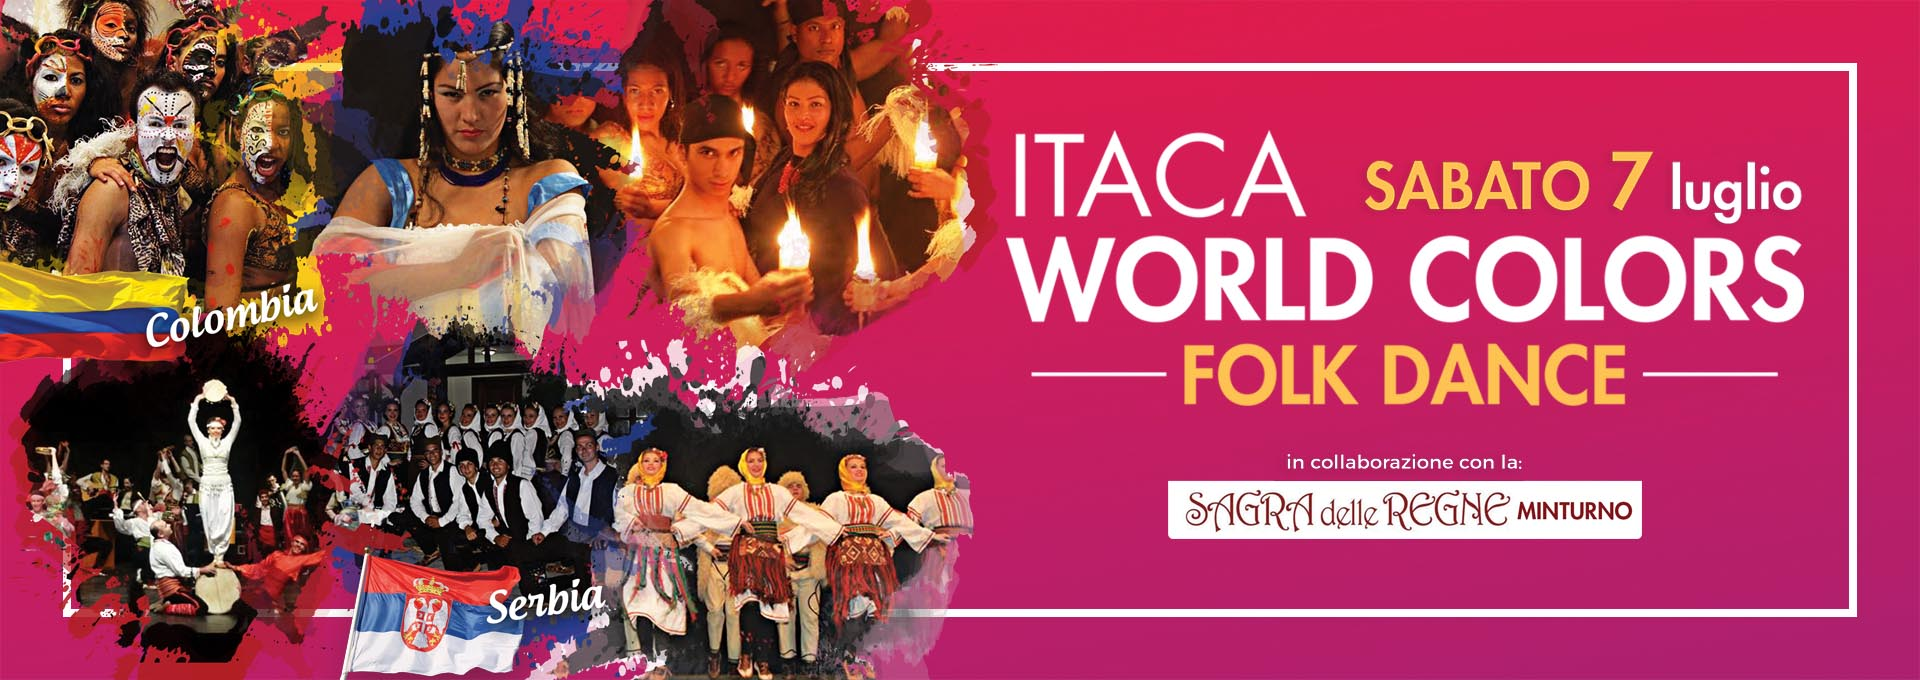 banner_itaca_world_colors_FOLK_DANCE_2018